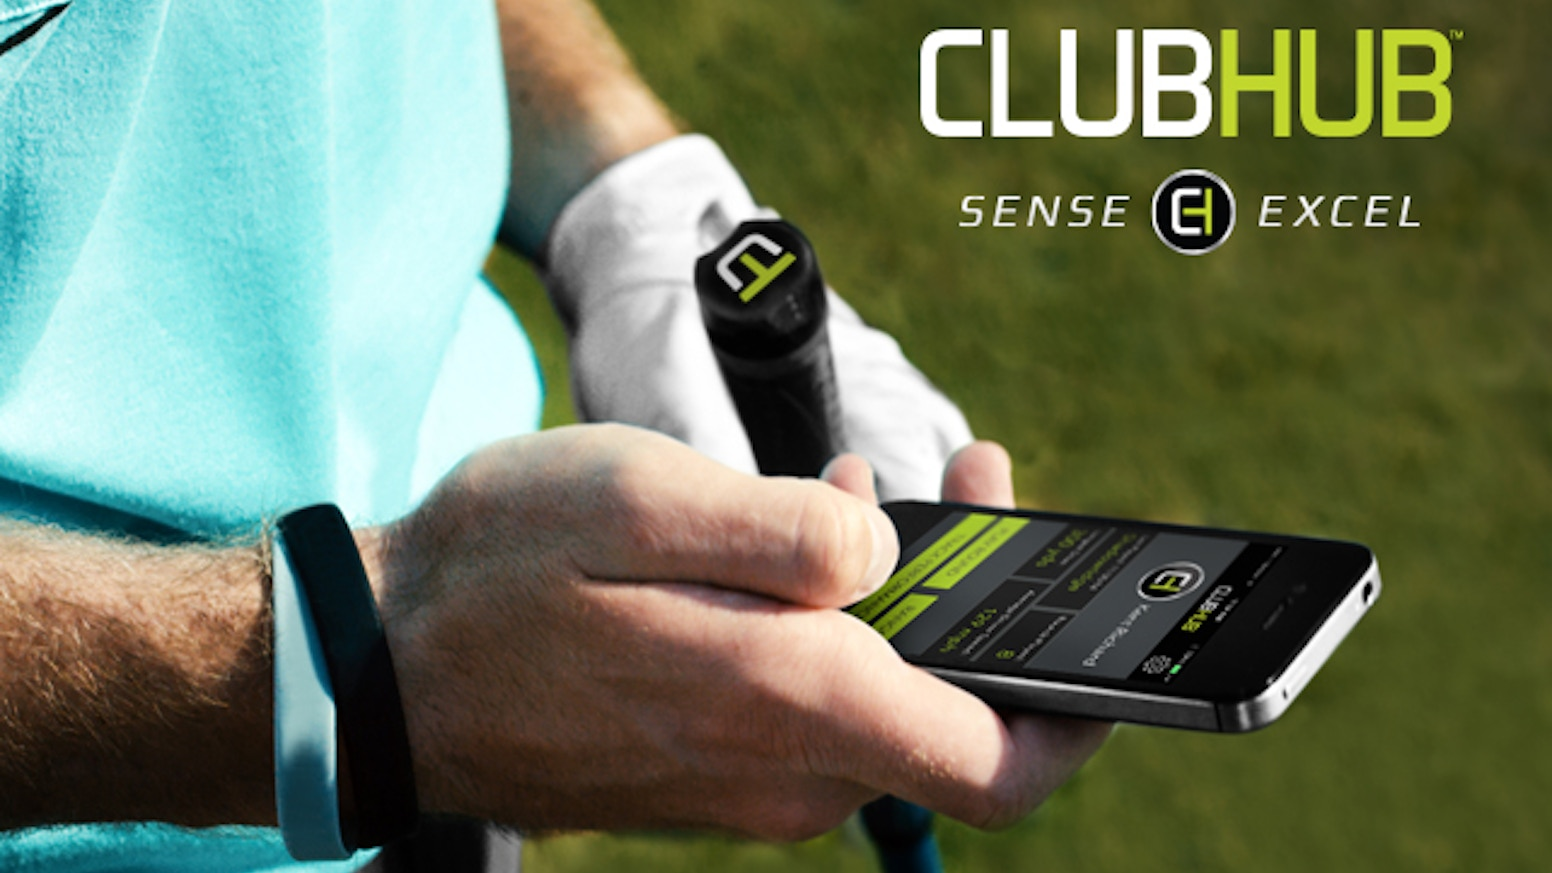 The first ever portable golf swing analysis and shot tracking system.